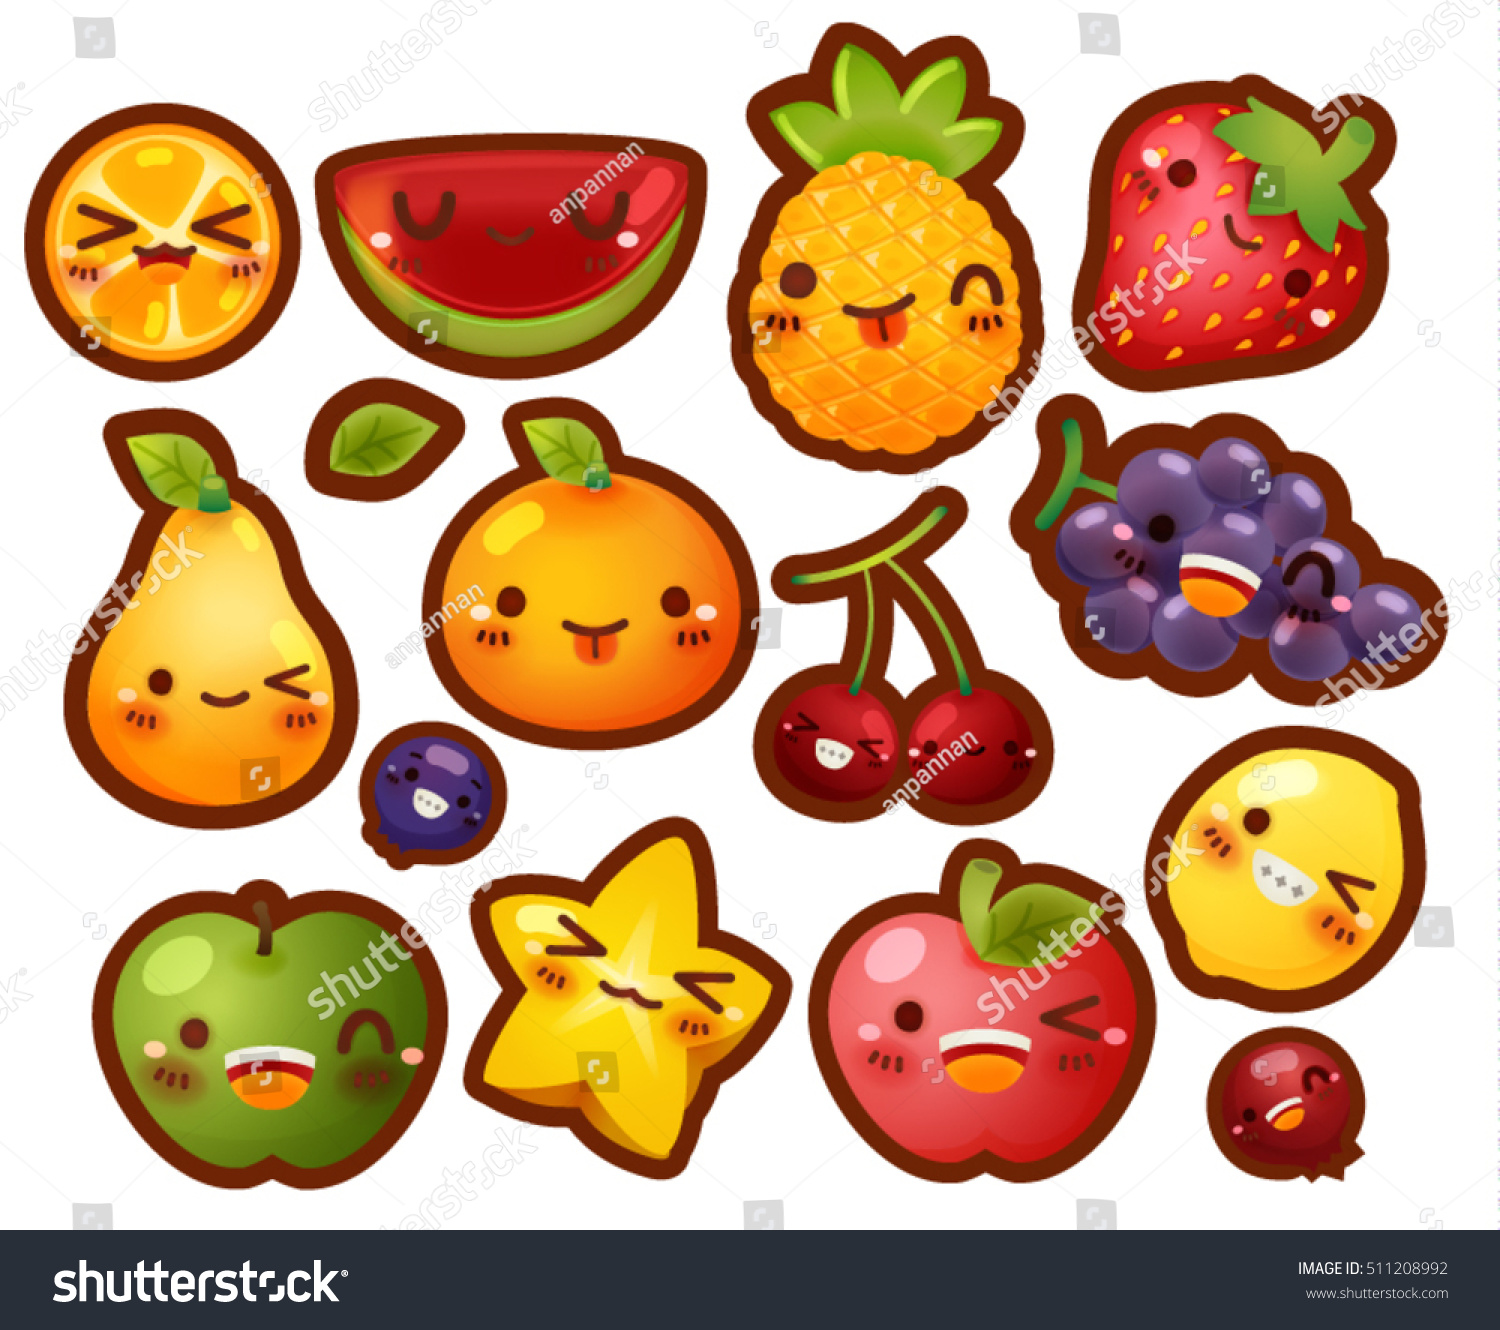 Fresh juice and fruits in hd photos cute babies photos collection - Collection Of Lovely Baby Fruit Doodle Icon Cute Strawberry Adorable Melon Sweet Orange